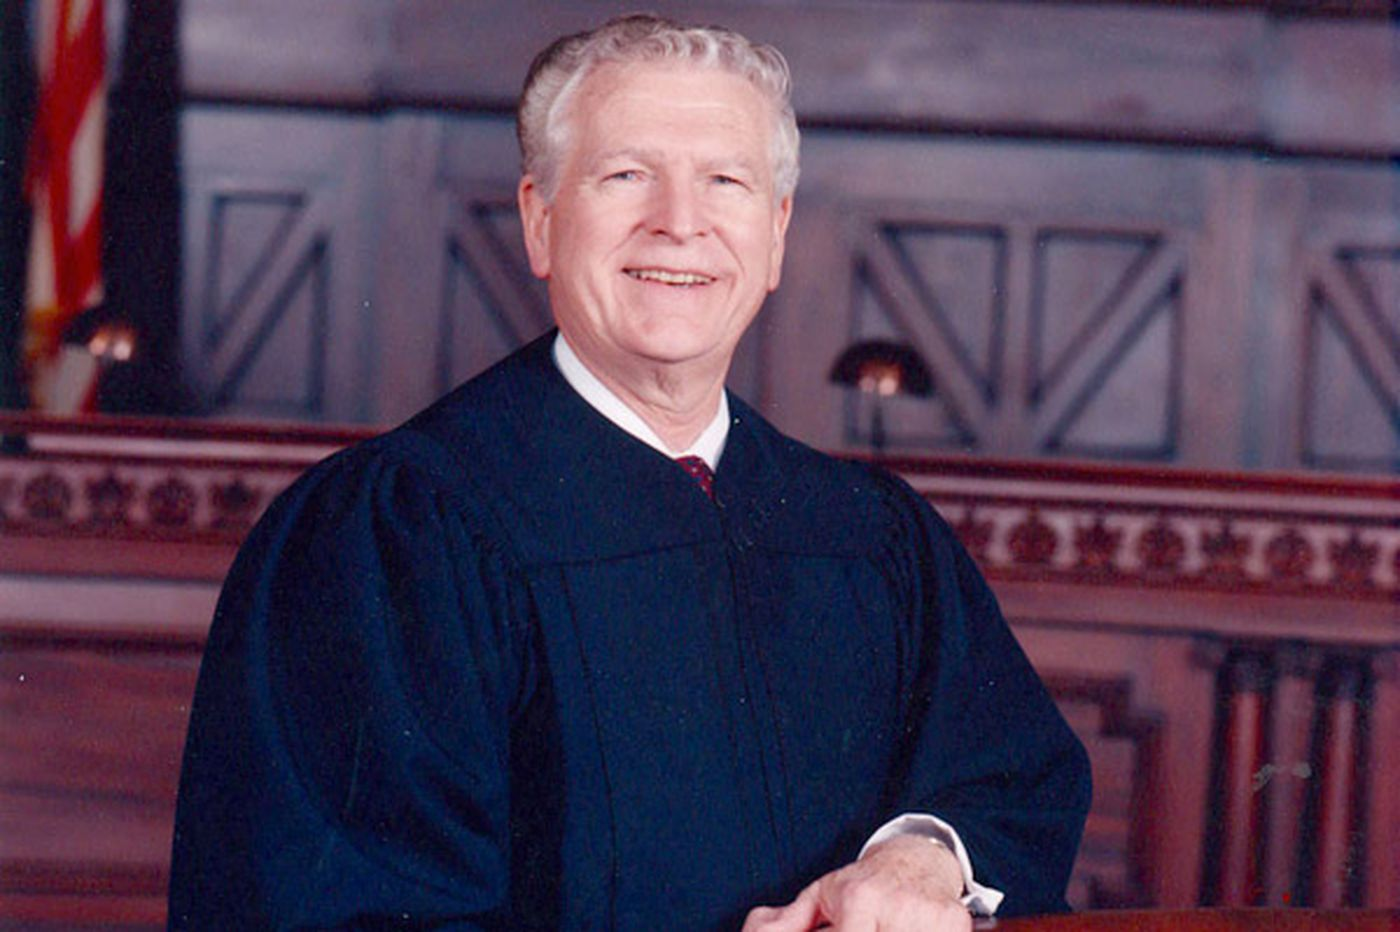 Joseph T. Doyle, former Pa. judge and member of House